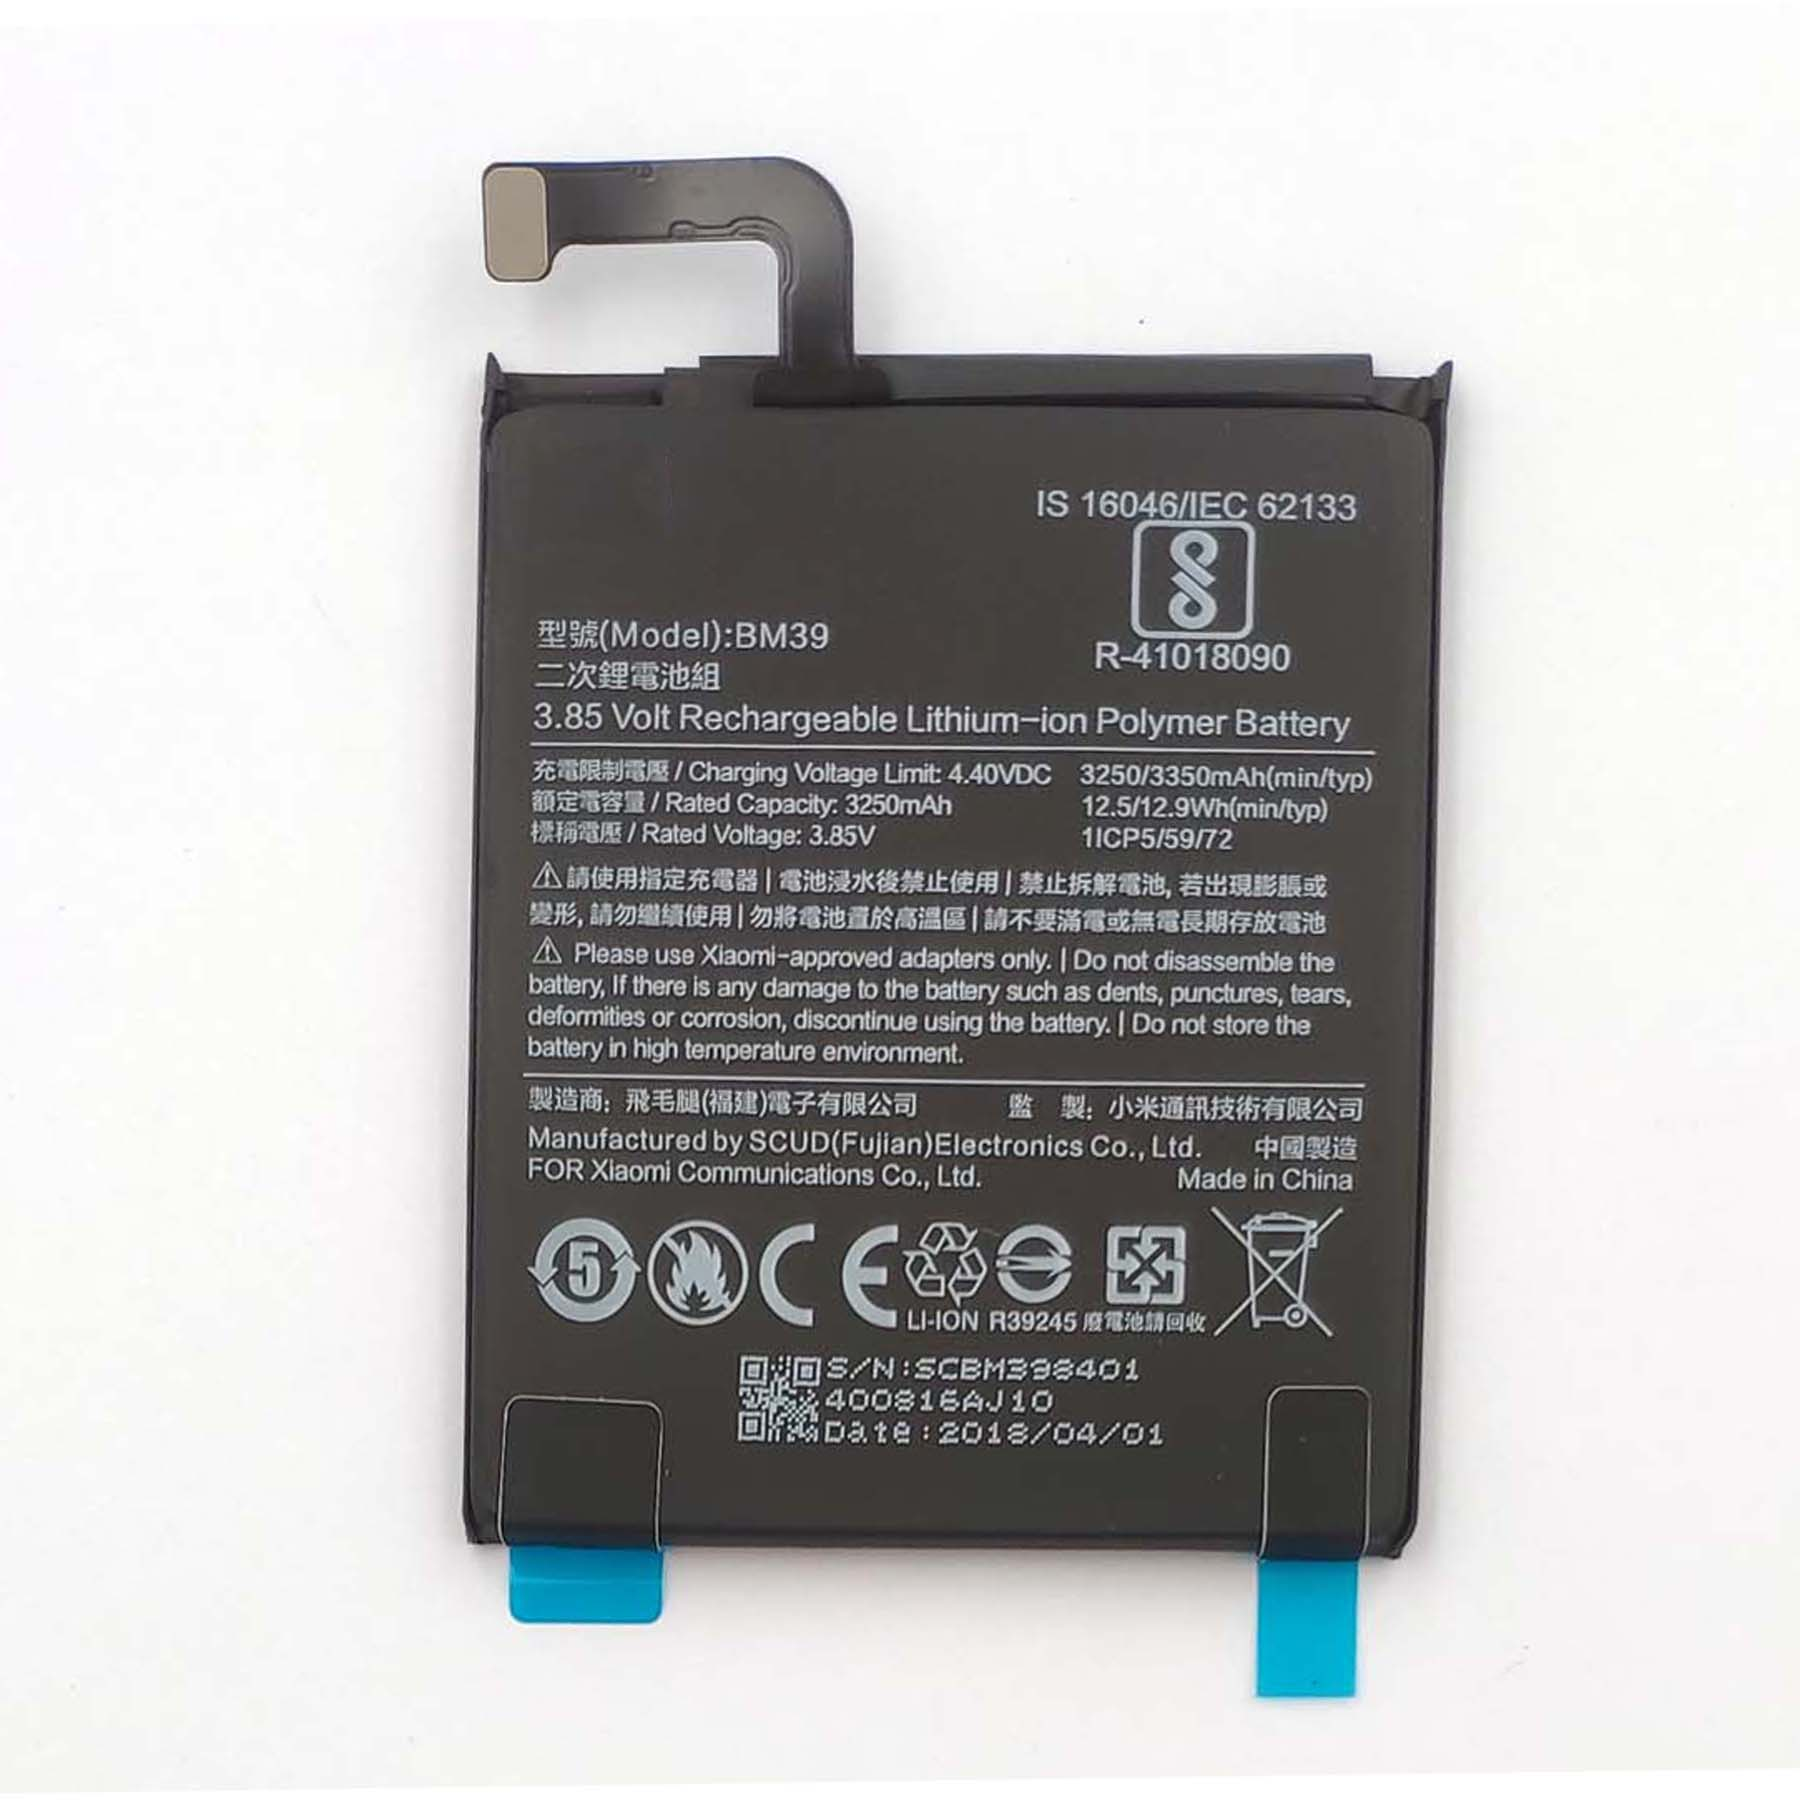 Original 3250mAh BM39 Built-in Battery for xiaomi 6 (only Deliver to some countries)